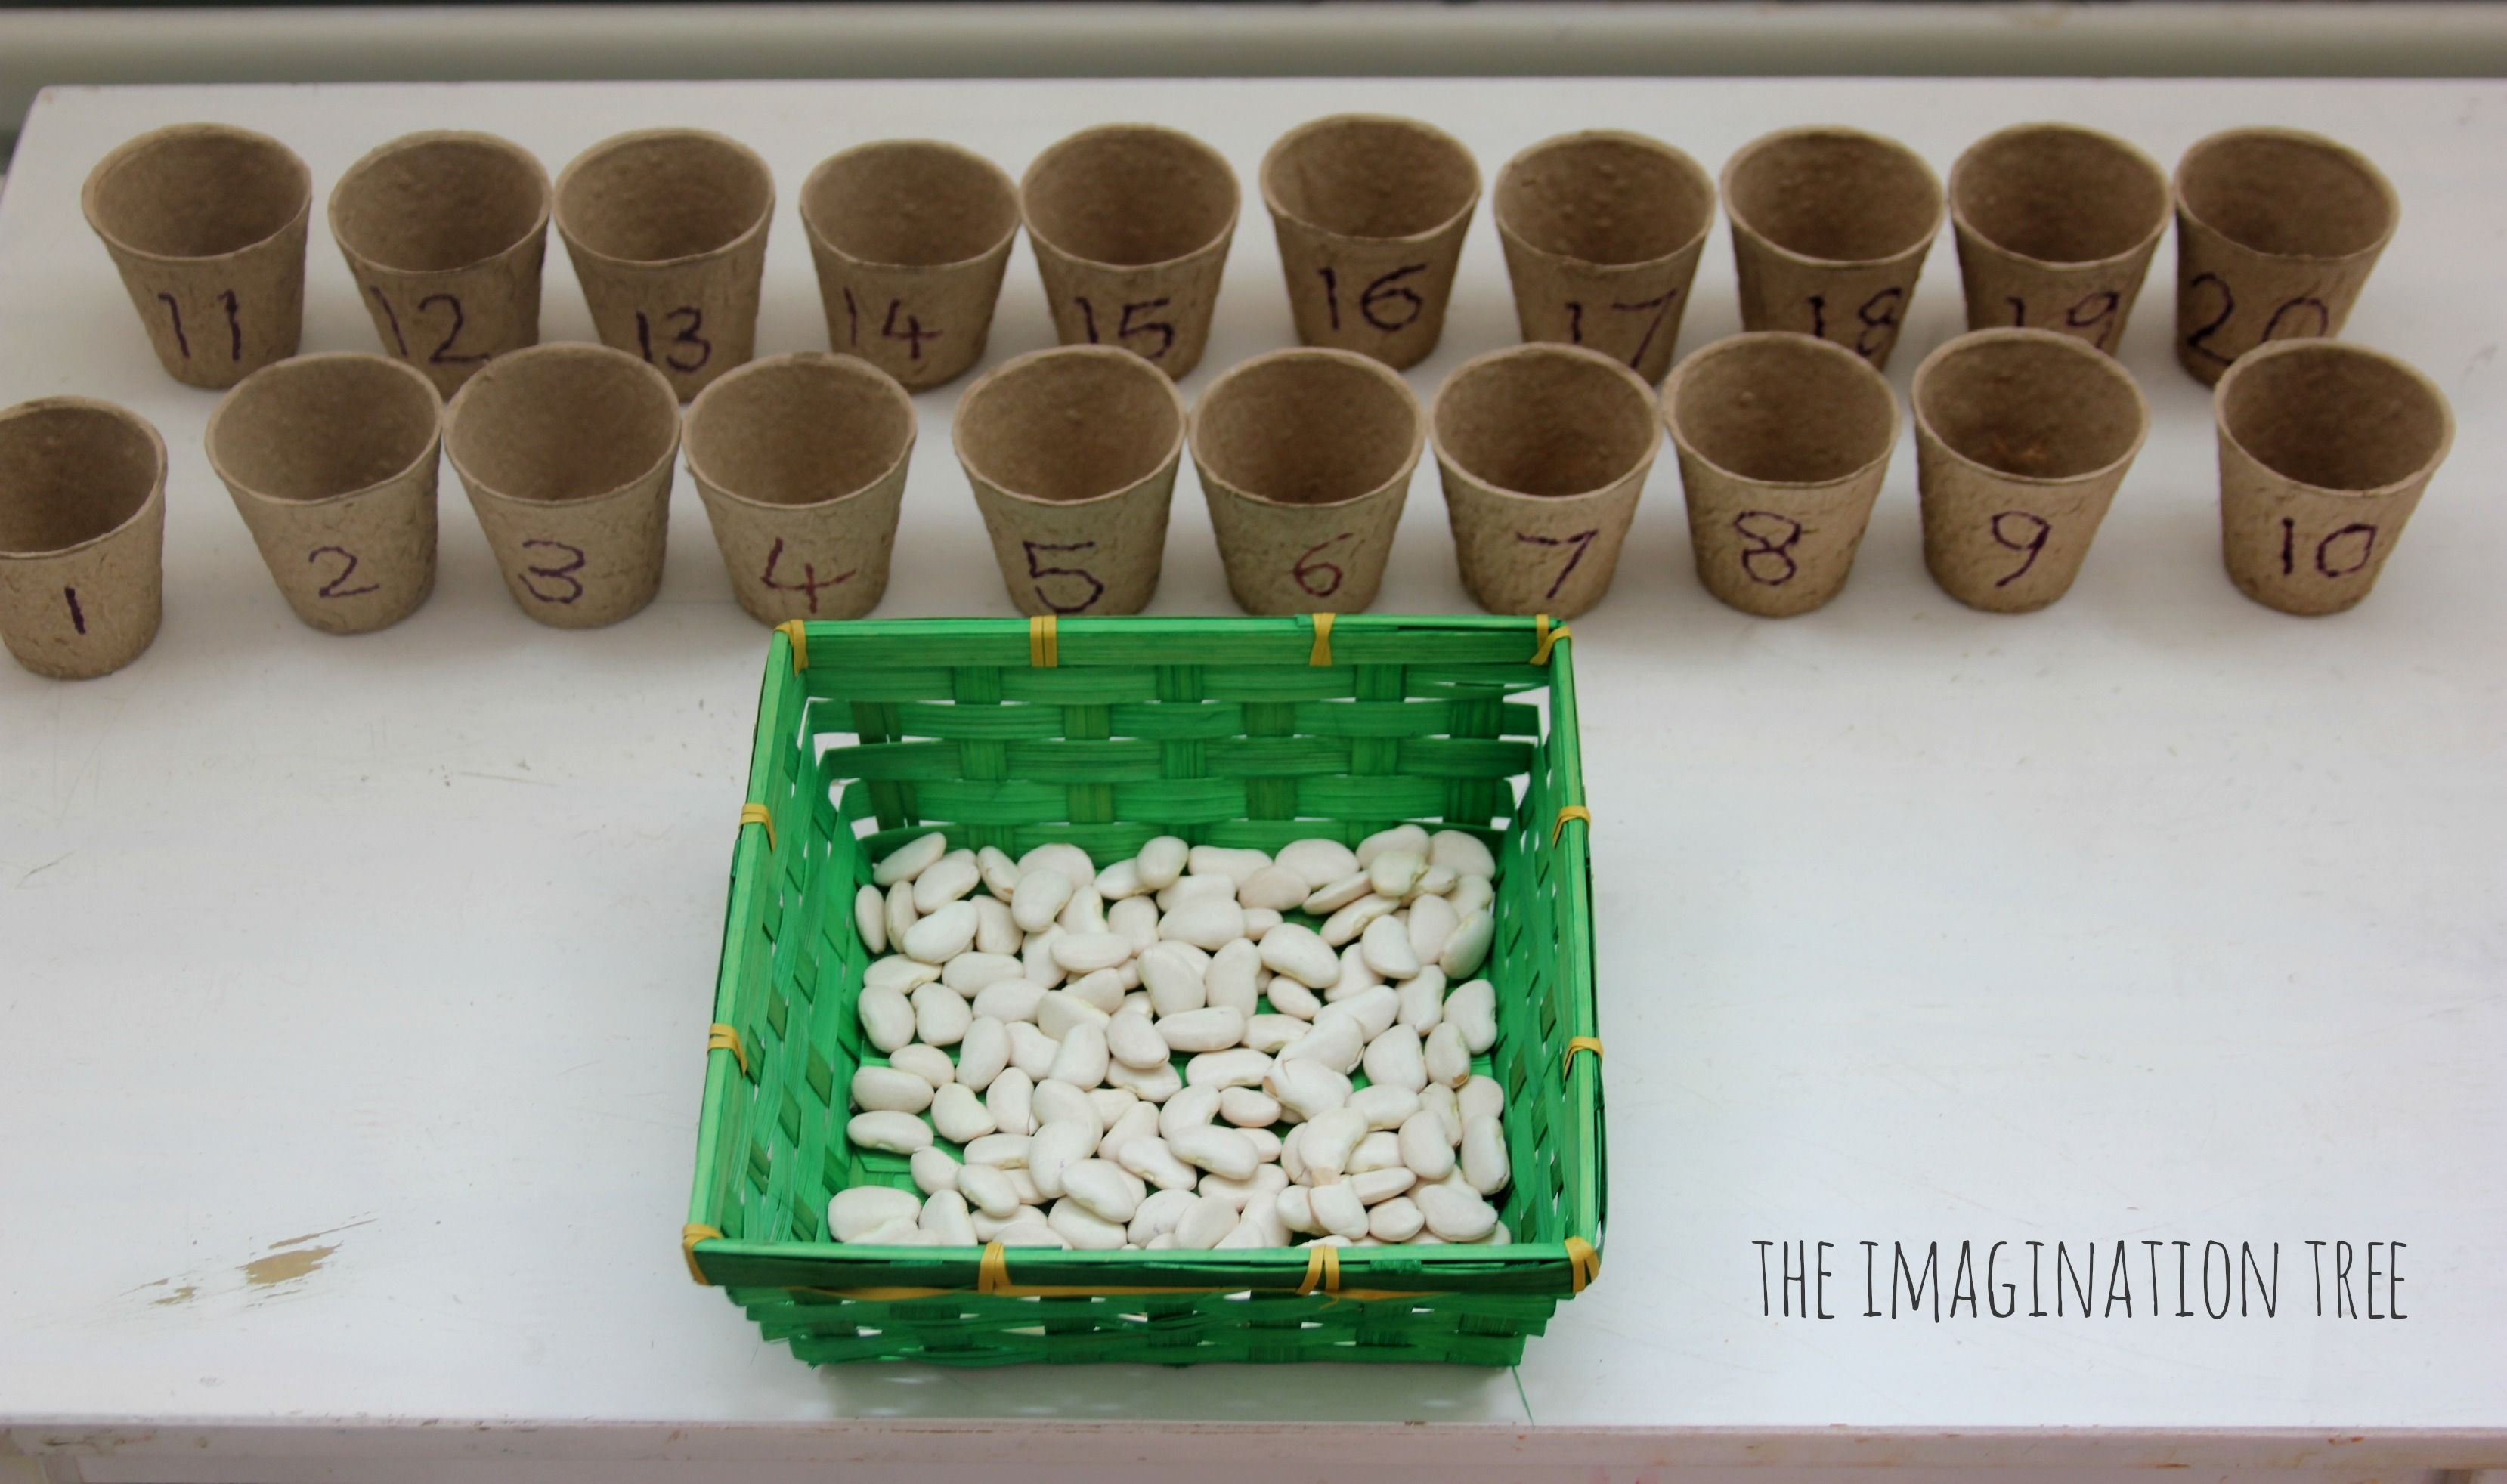 Beans And Flower Pots Counting Activity With Images